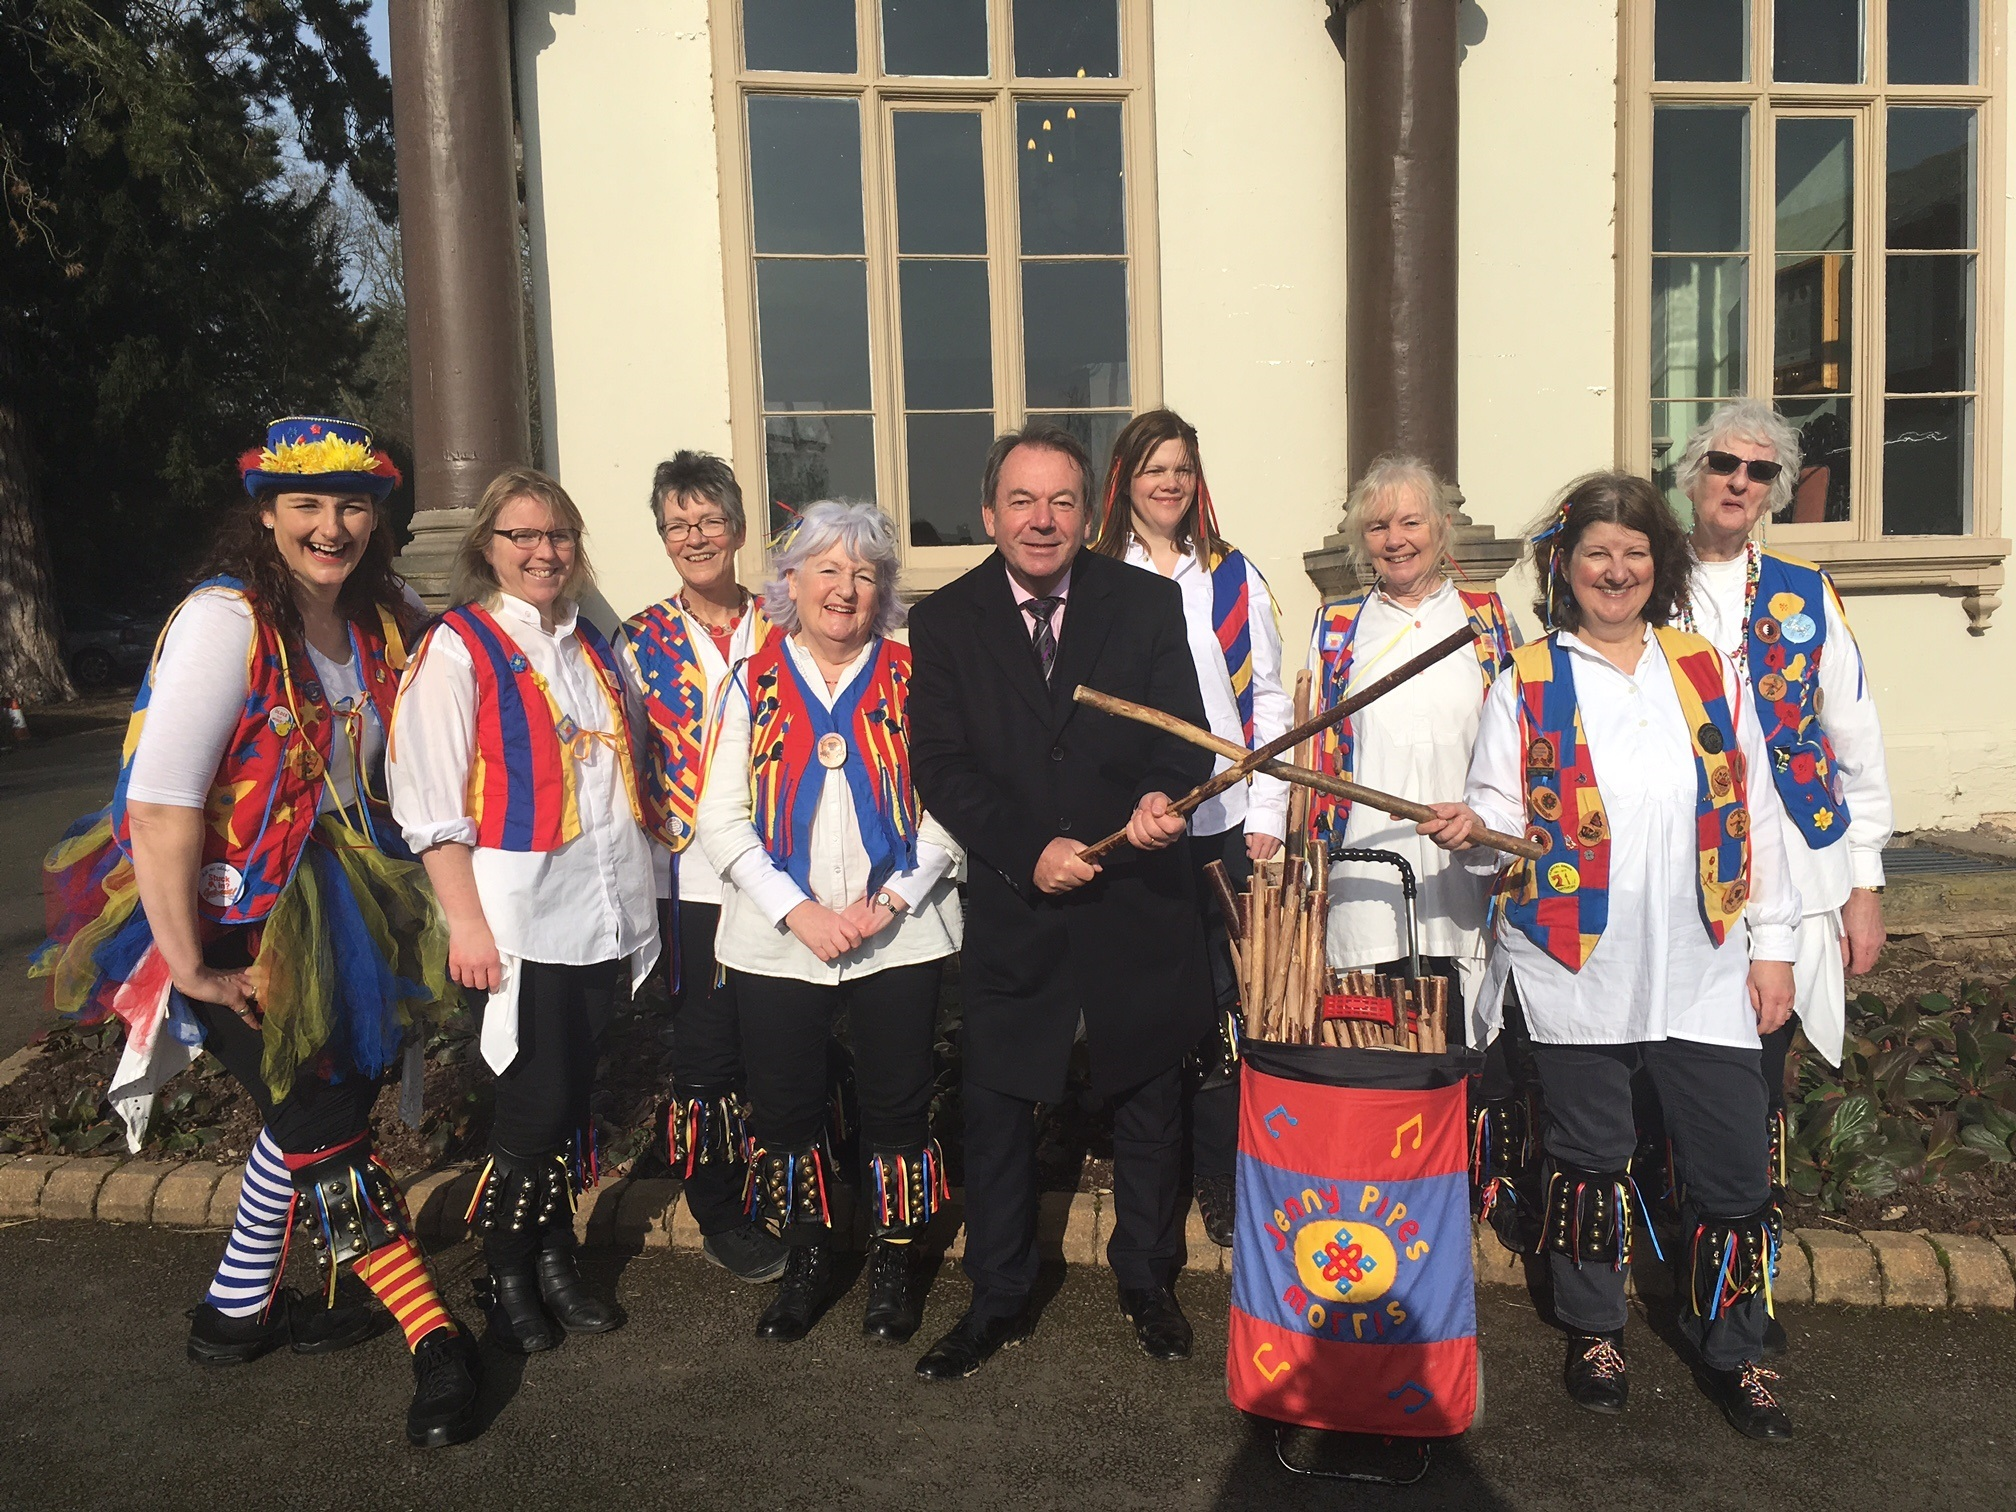 The Jenny pipes' Morris Side with Eric Knowles during a  break from filming the BBC show Bargain Hunt in Leominster